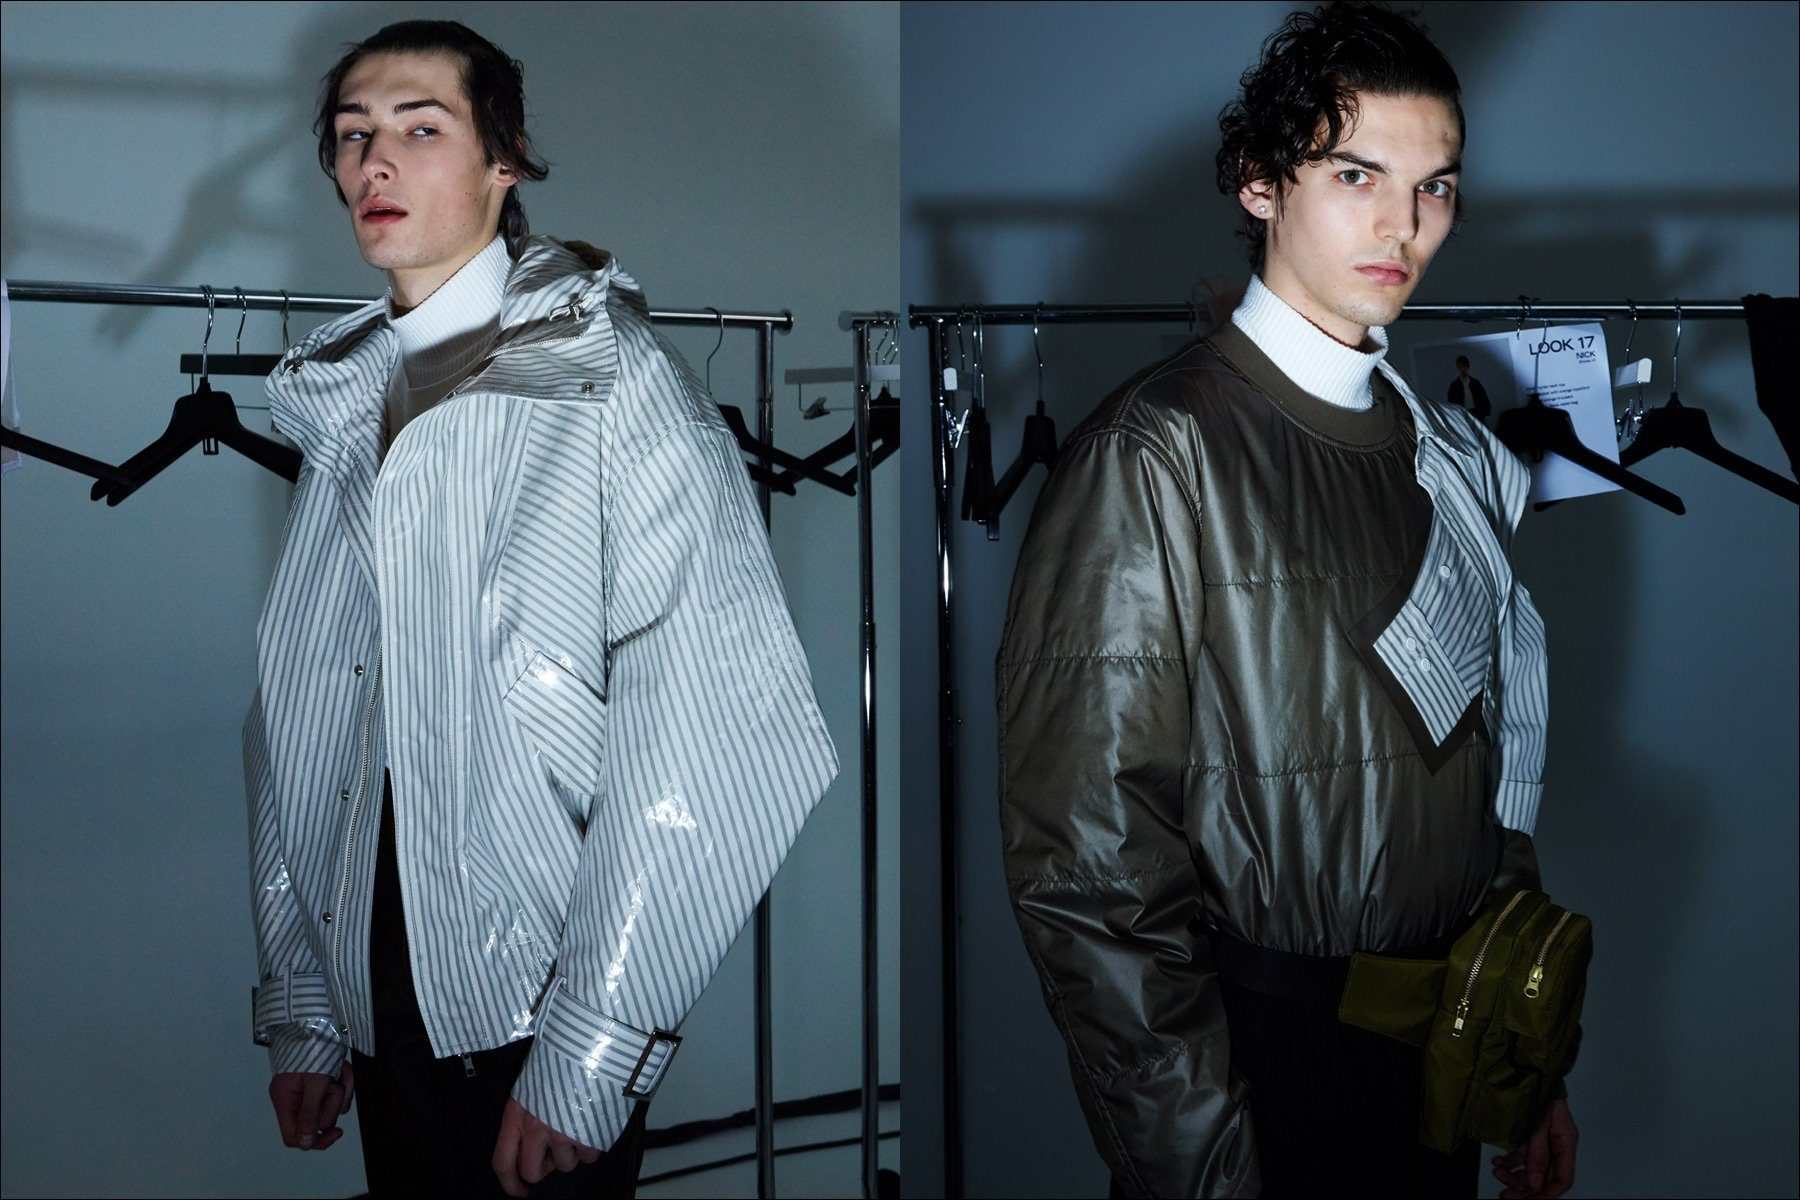 Male models Laurens & Eli snapped backstage wearing the latest from Feng Chen Wang, Fall 2018. Photography by Alexander Thompson for Ponyboy magazine.